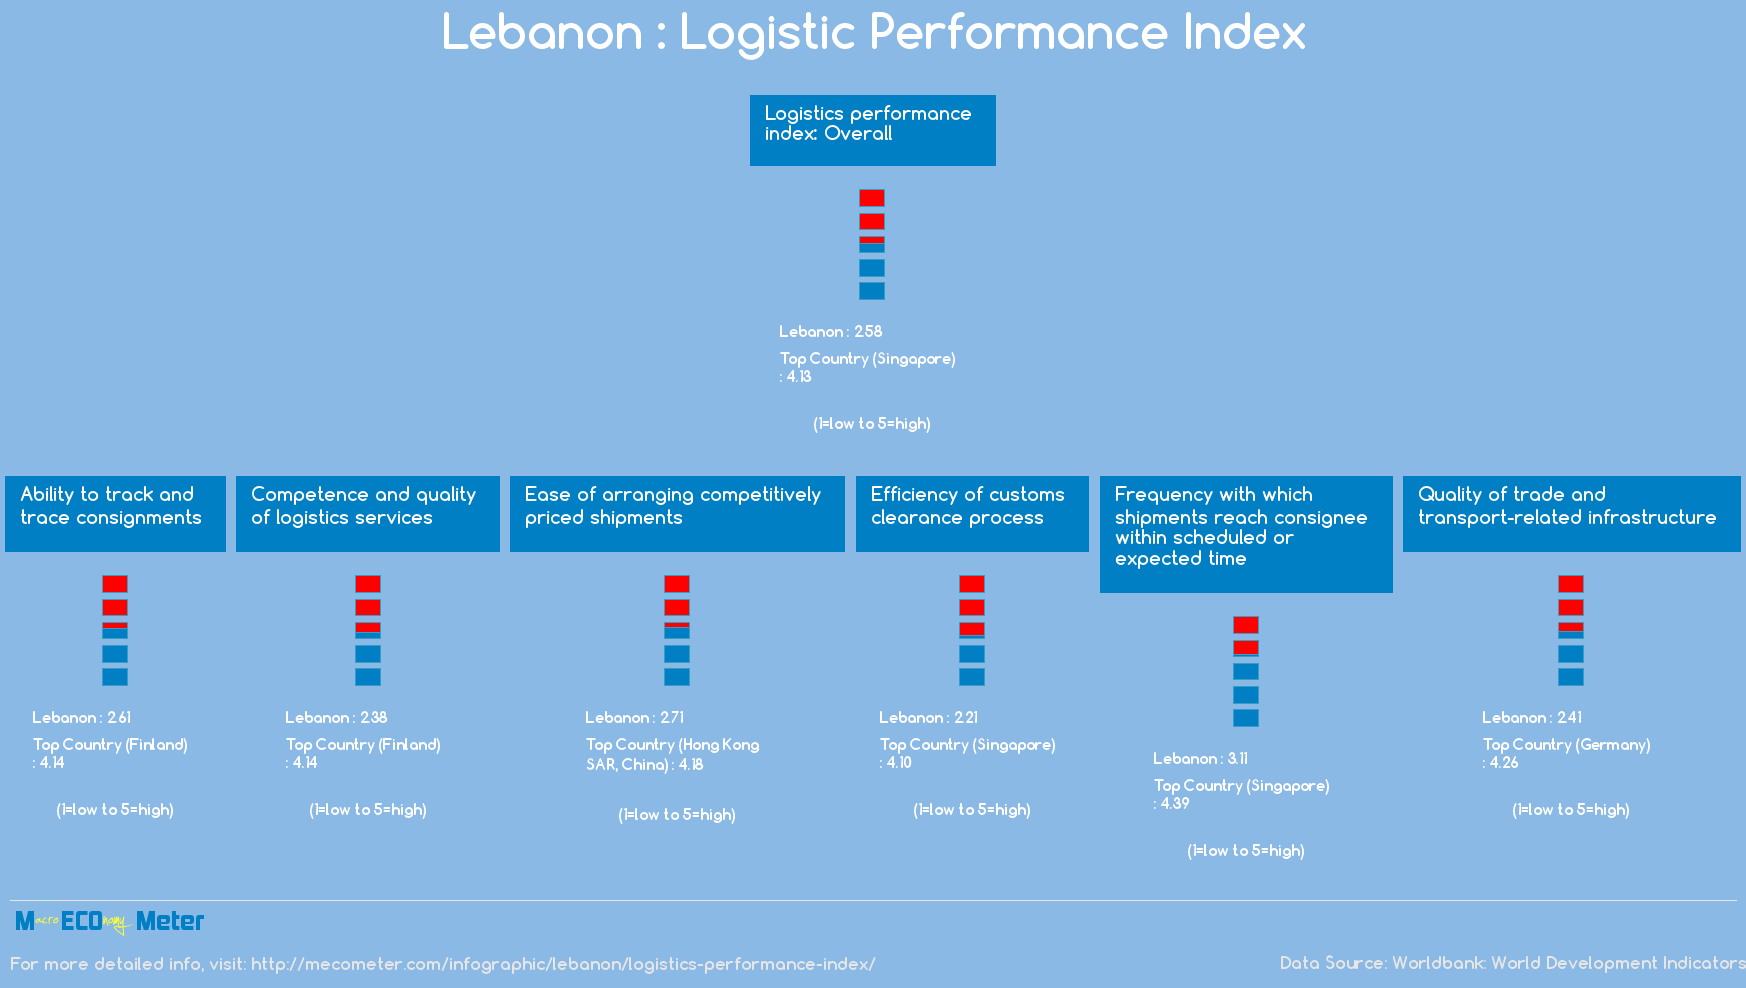 Lebanon : Logistic Performance Index